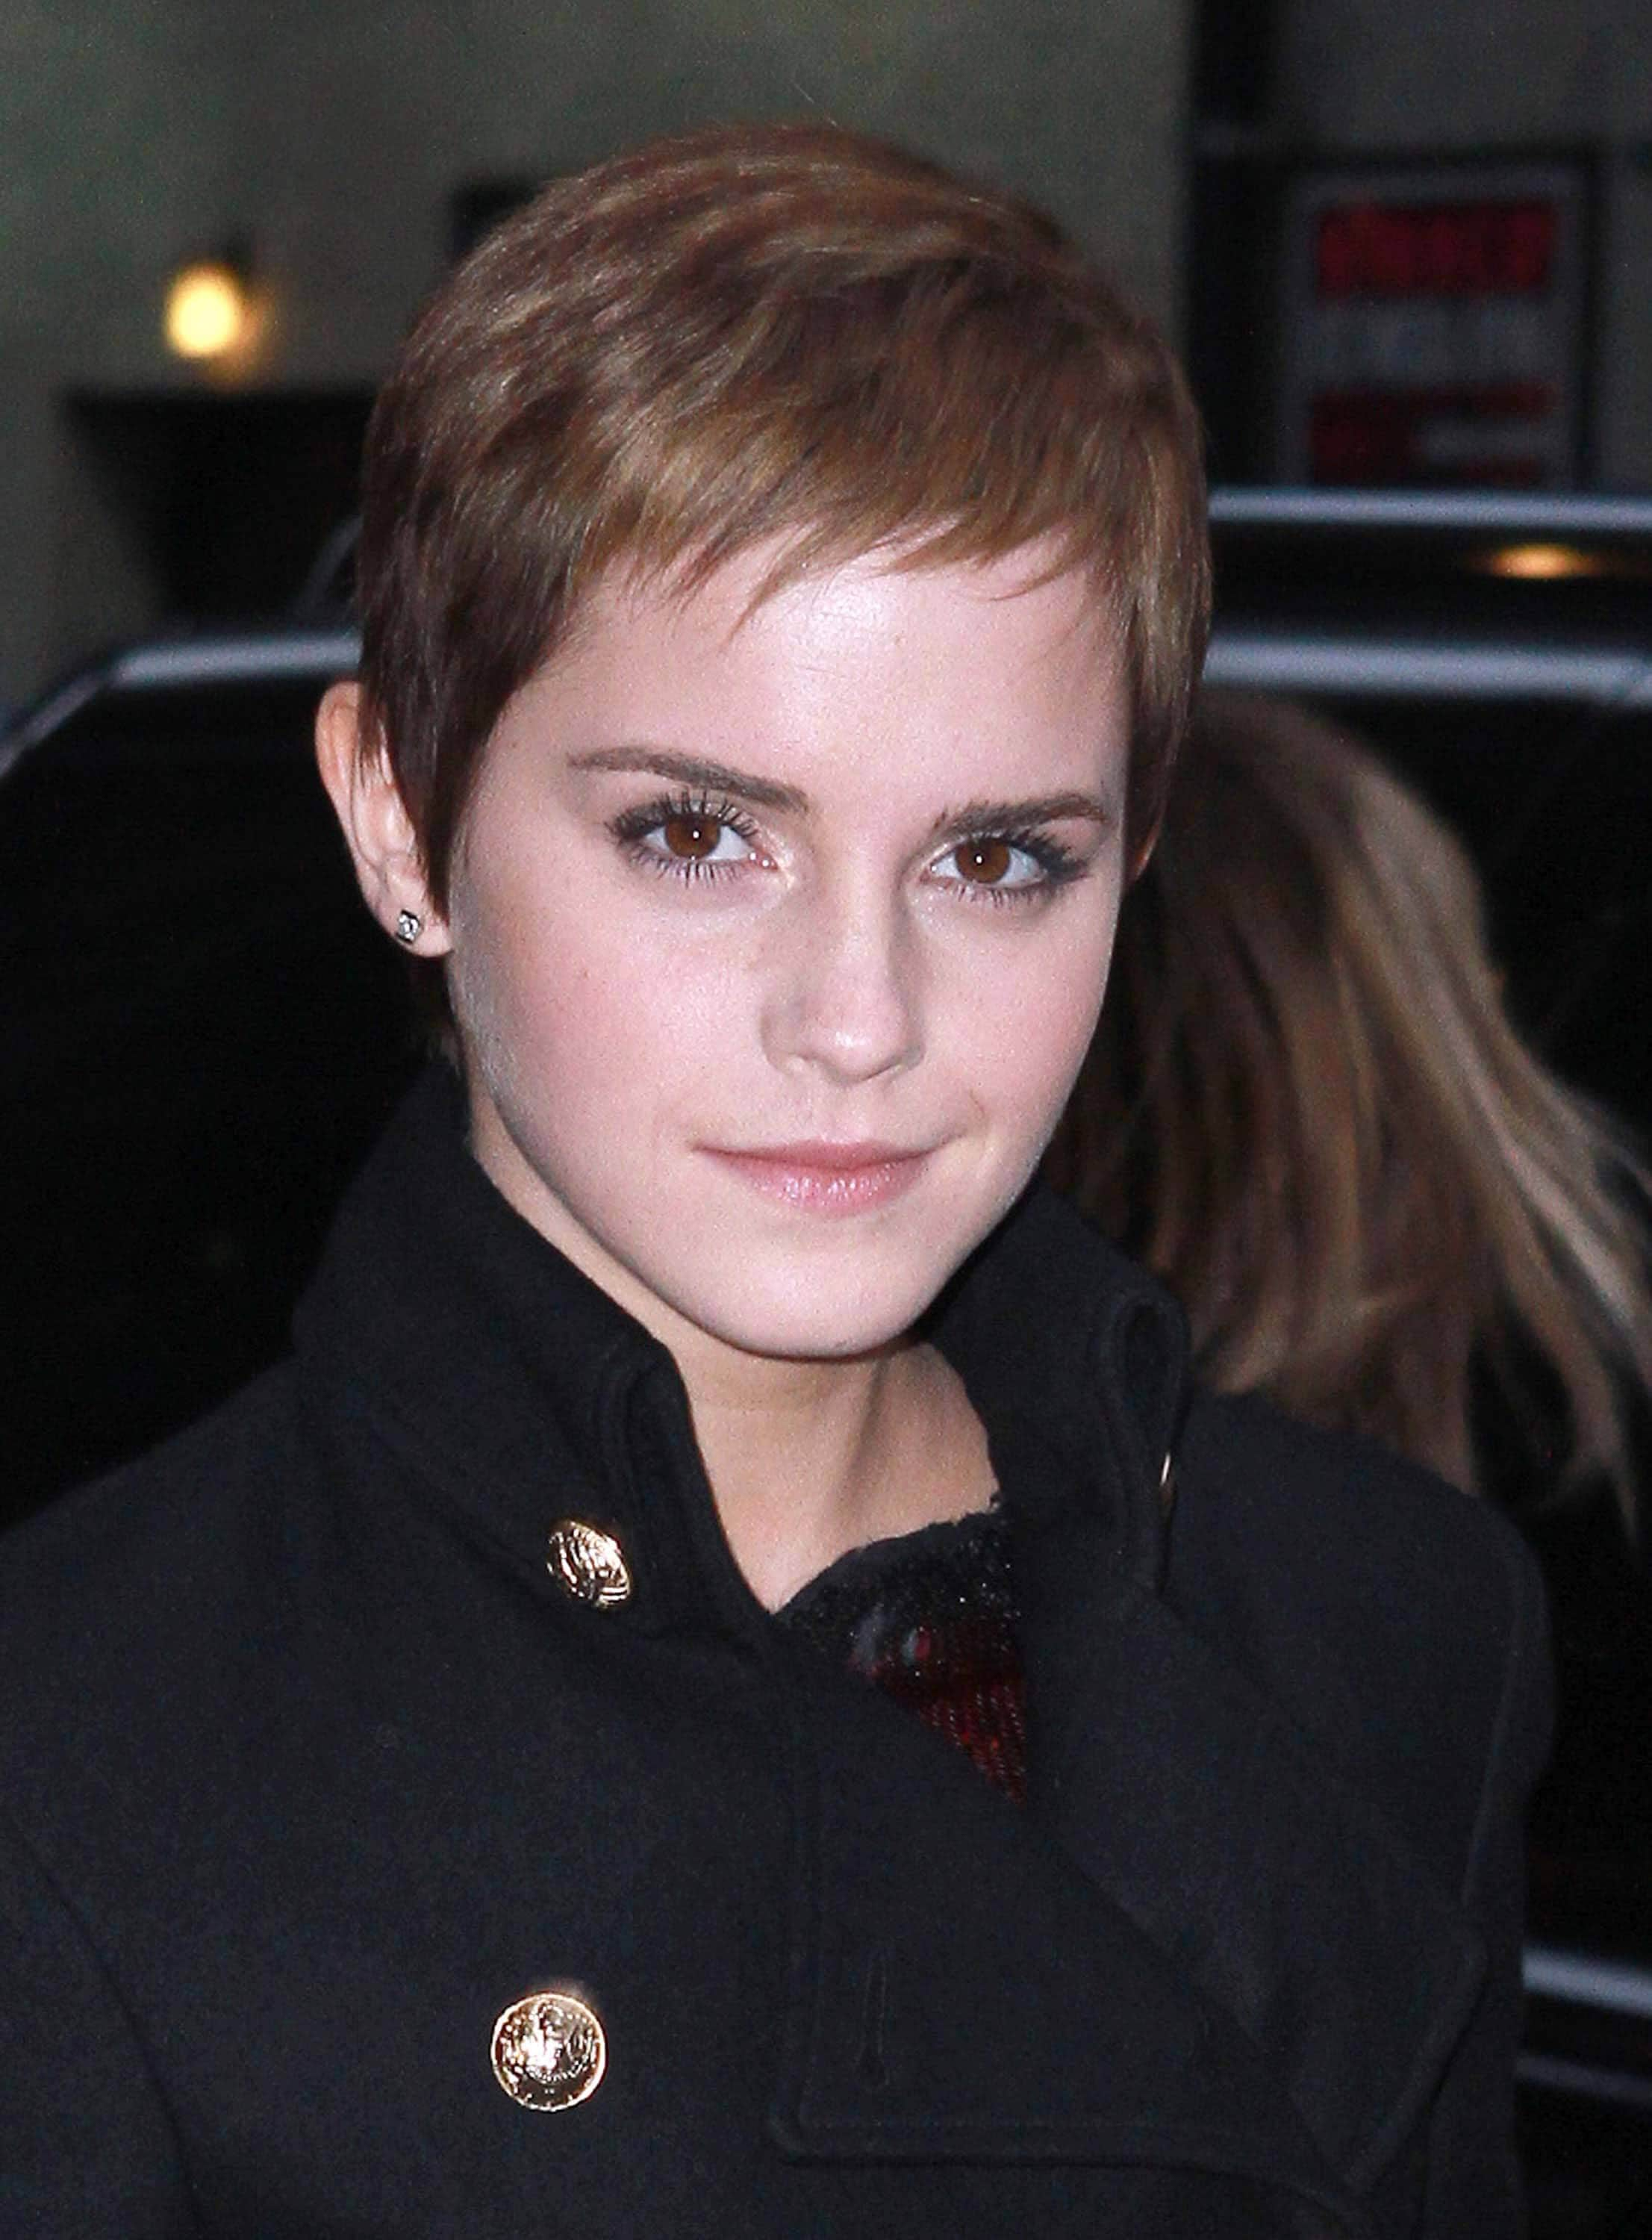 A History Of The Pixie Cut How This Short Crop Became Iconic